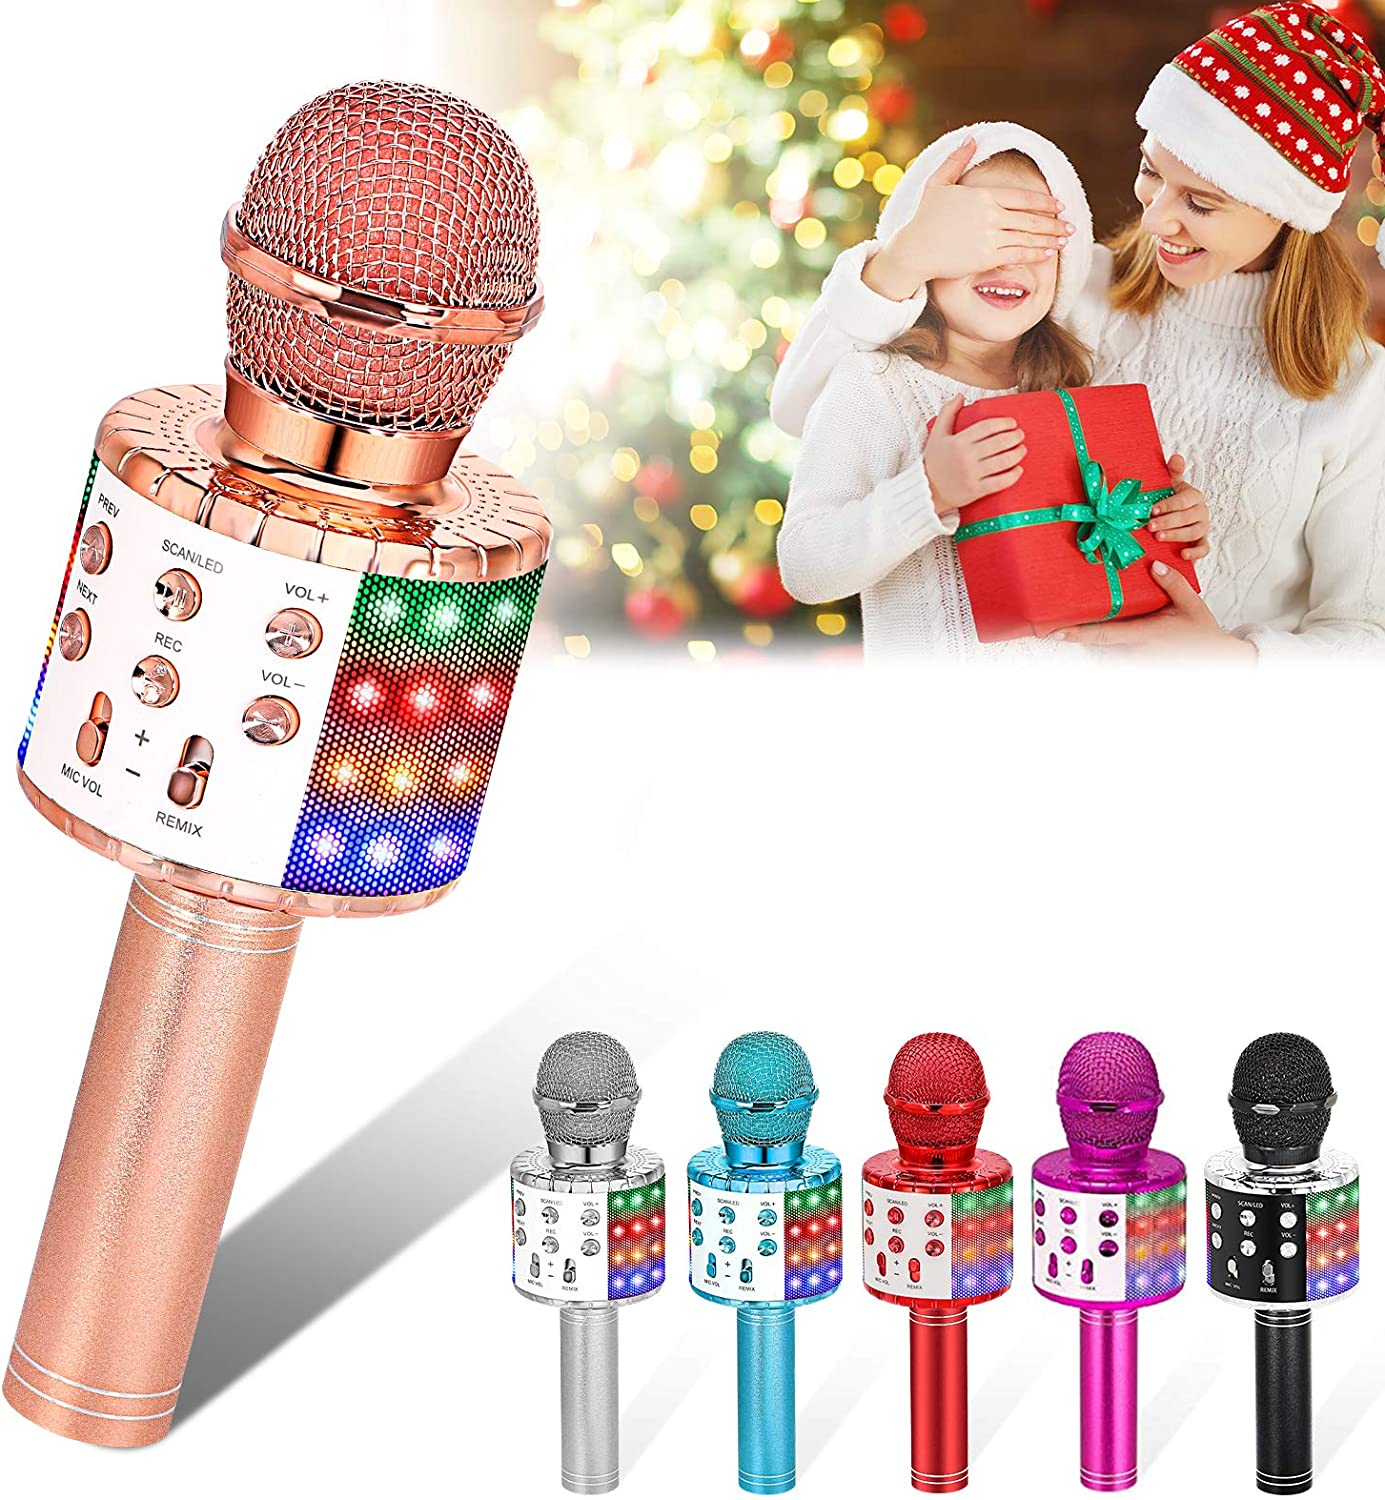 Home KTV Rose Gold Best Toy for 3-12 Years Old Kids Boys//Girls//Adults Birthday Party Wireless Karaoke Microphone Machine Toy- Amazmic Handheld Bluetooth Microphone for Karaoke with Lights